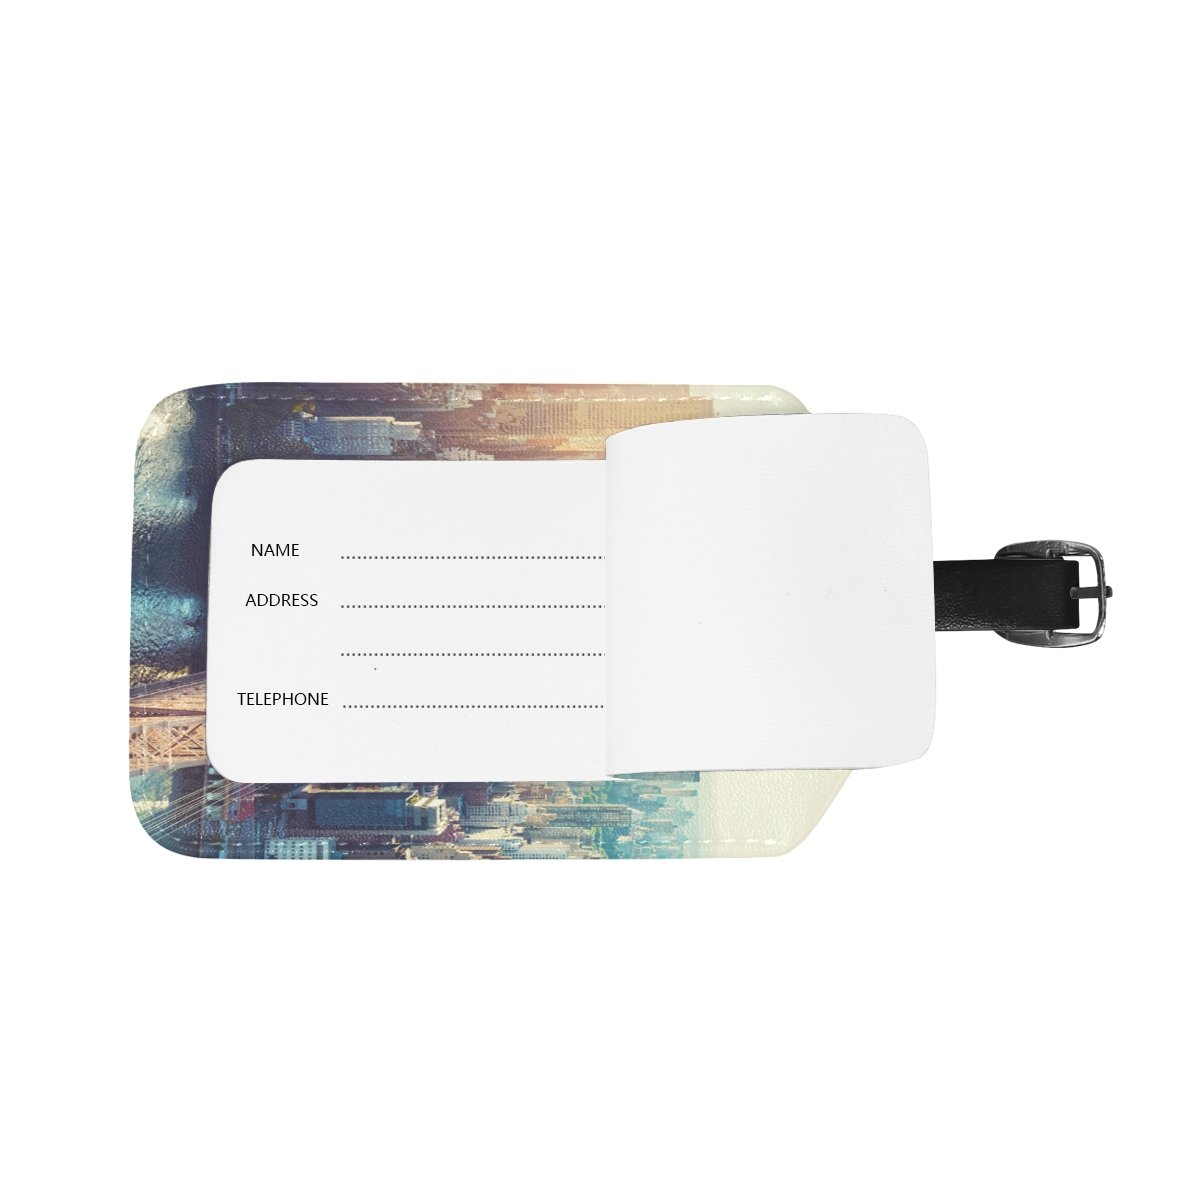 Saobao Travel Luggage Tag Aerial View Of The New York City Skyline PU Leather Baggage Suitcase Travel ID Bag Tag 1Pcs